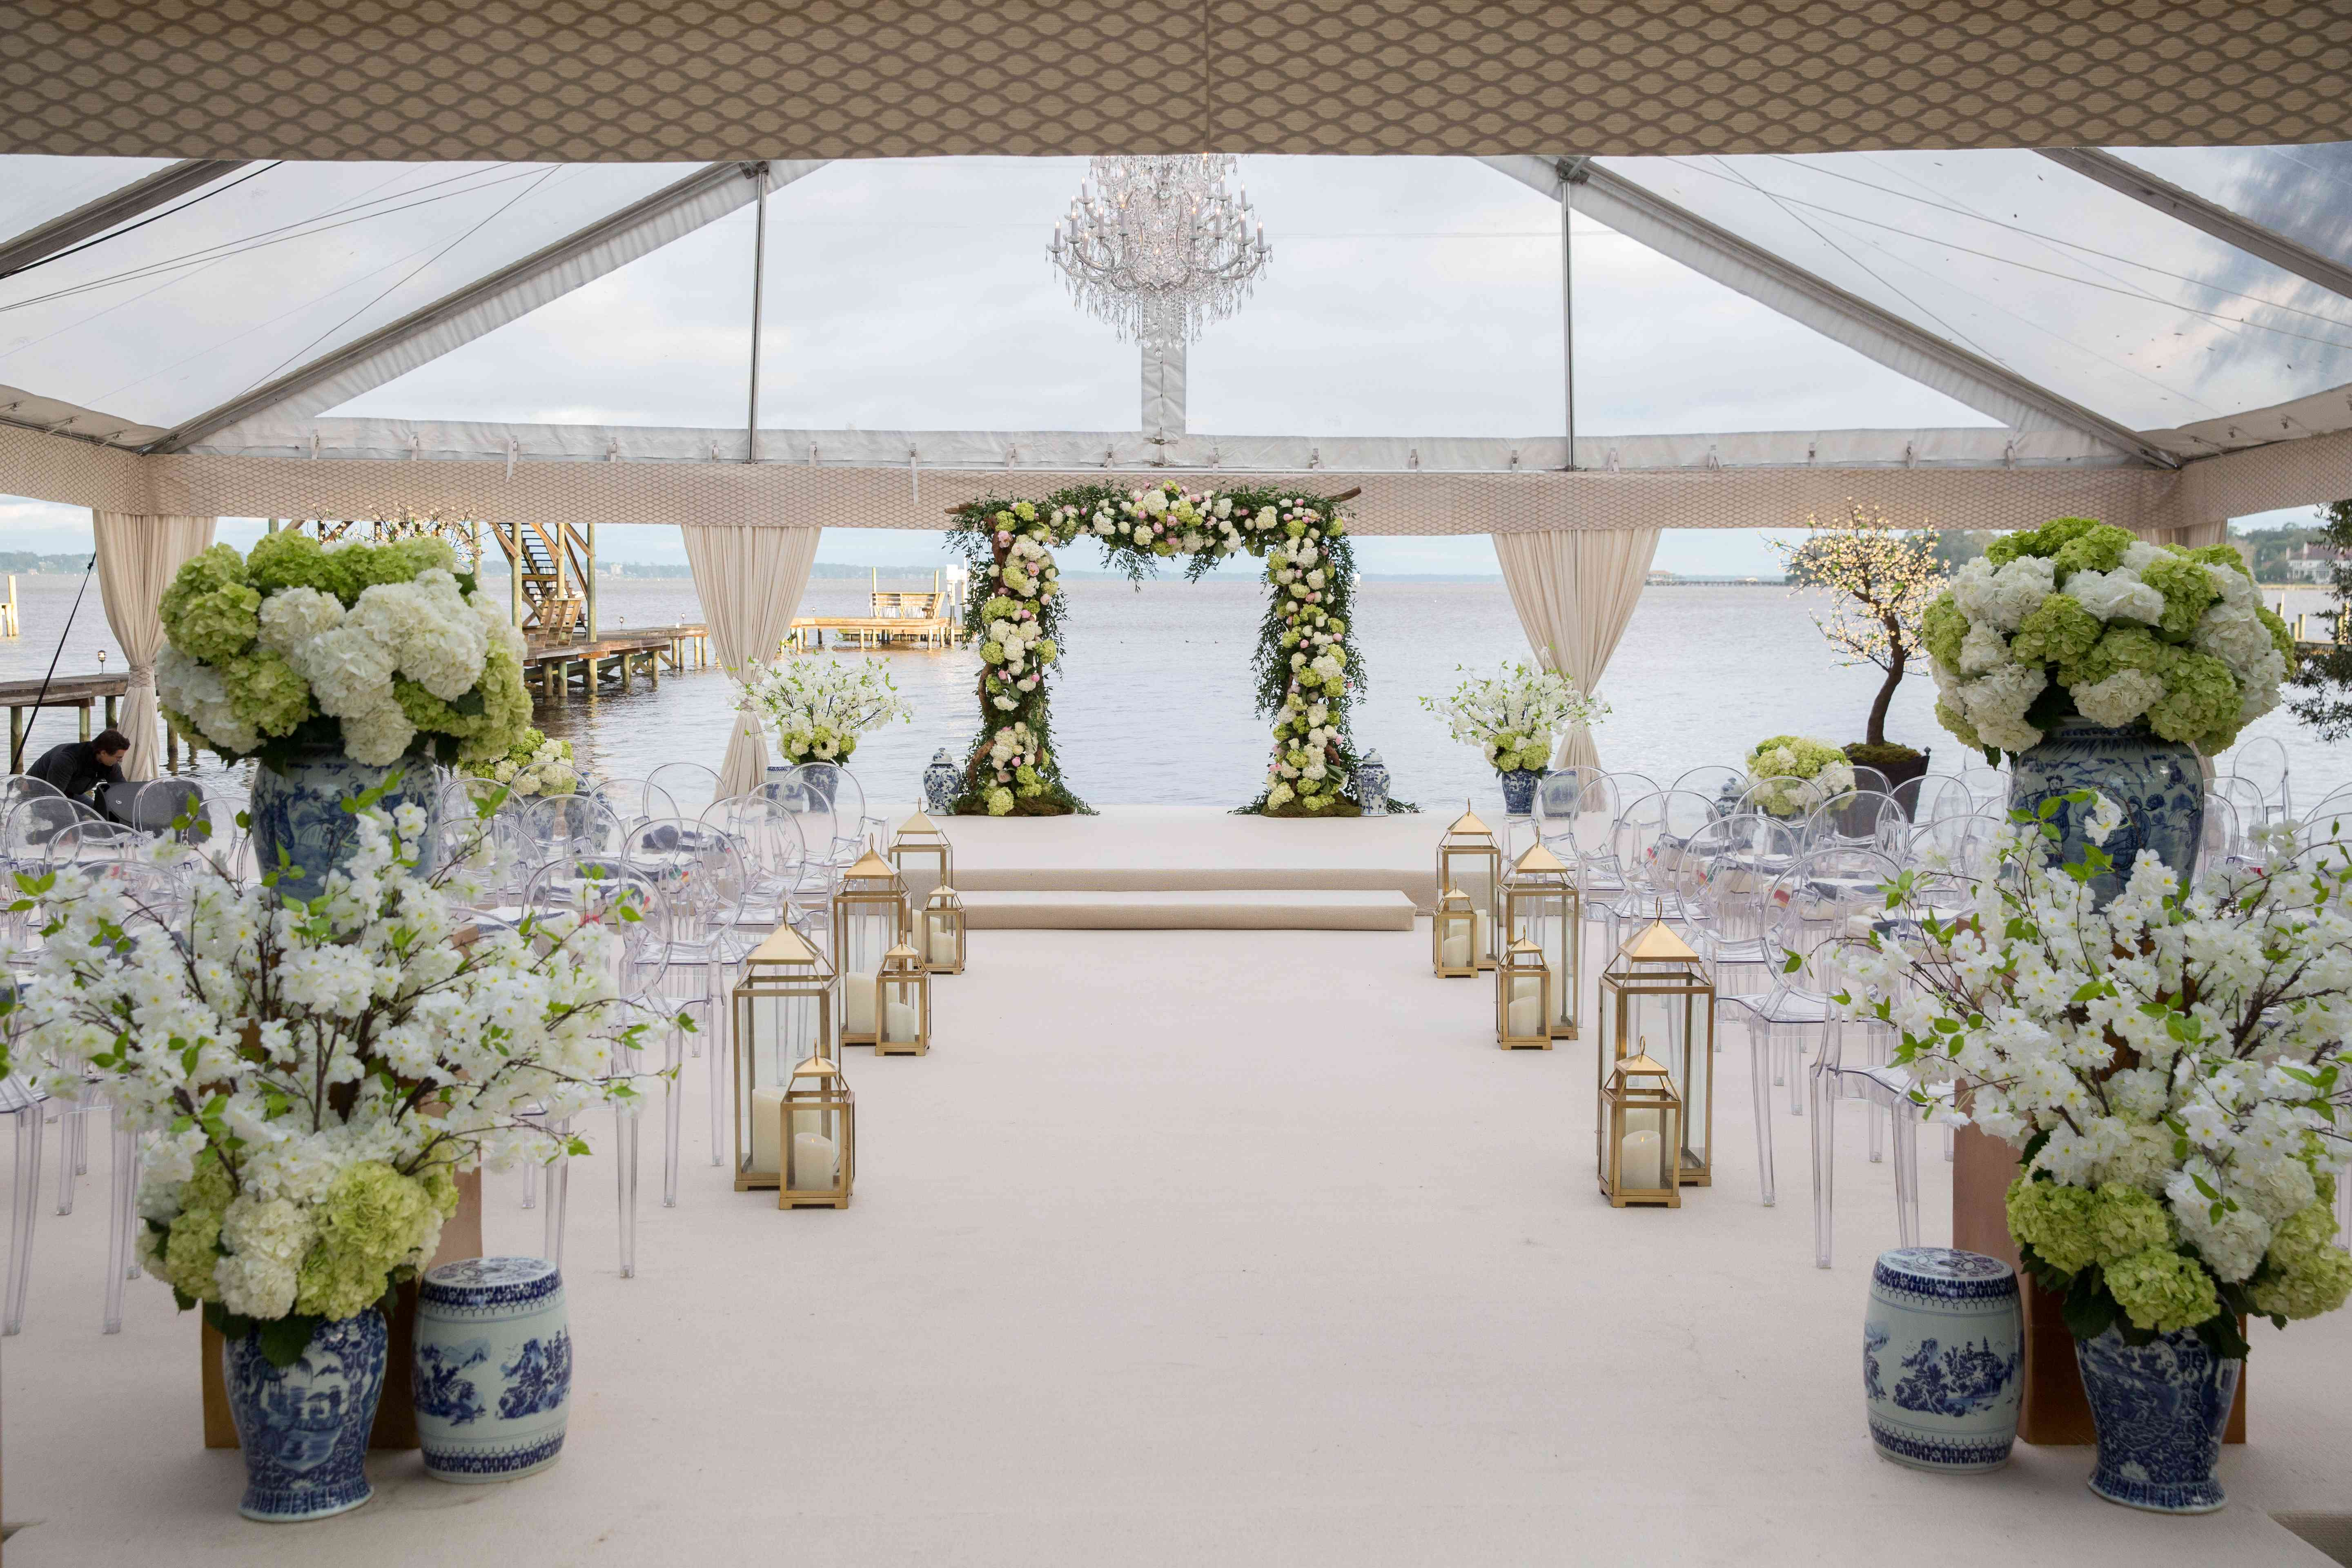 <p>Ceremony Space with Flower Arch</p><br><br>